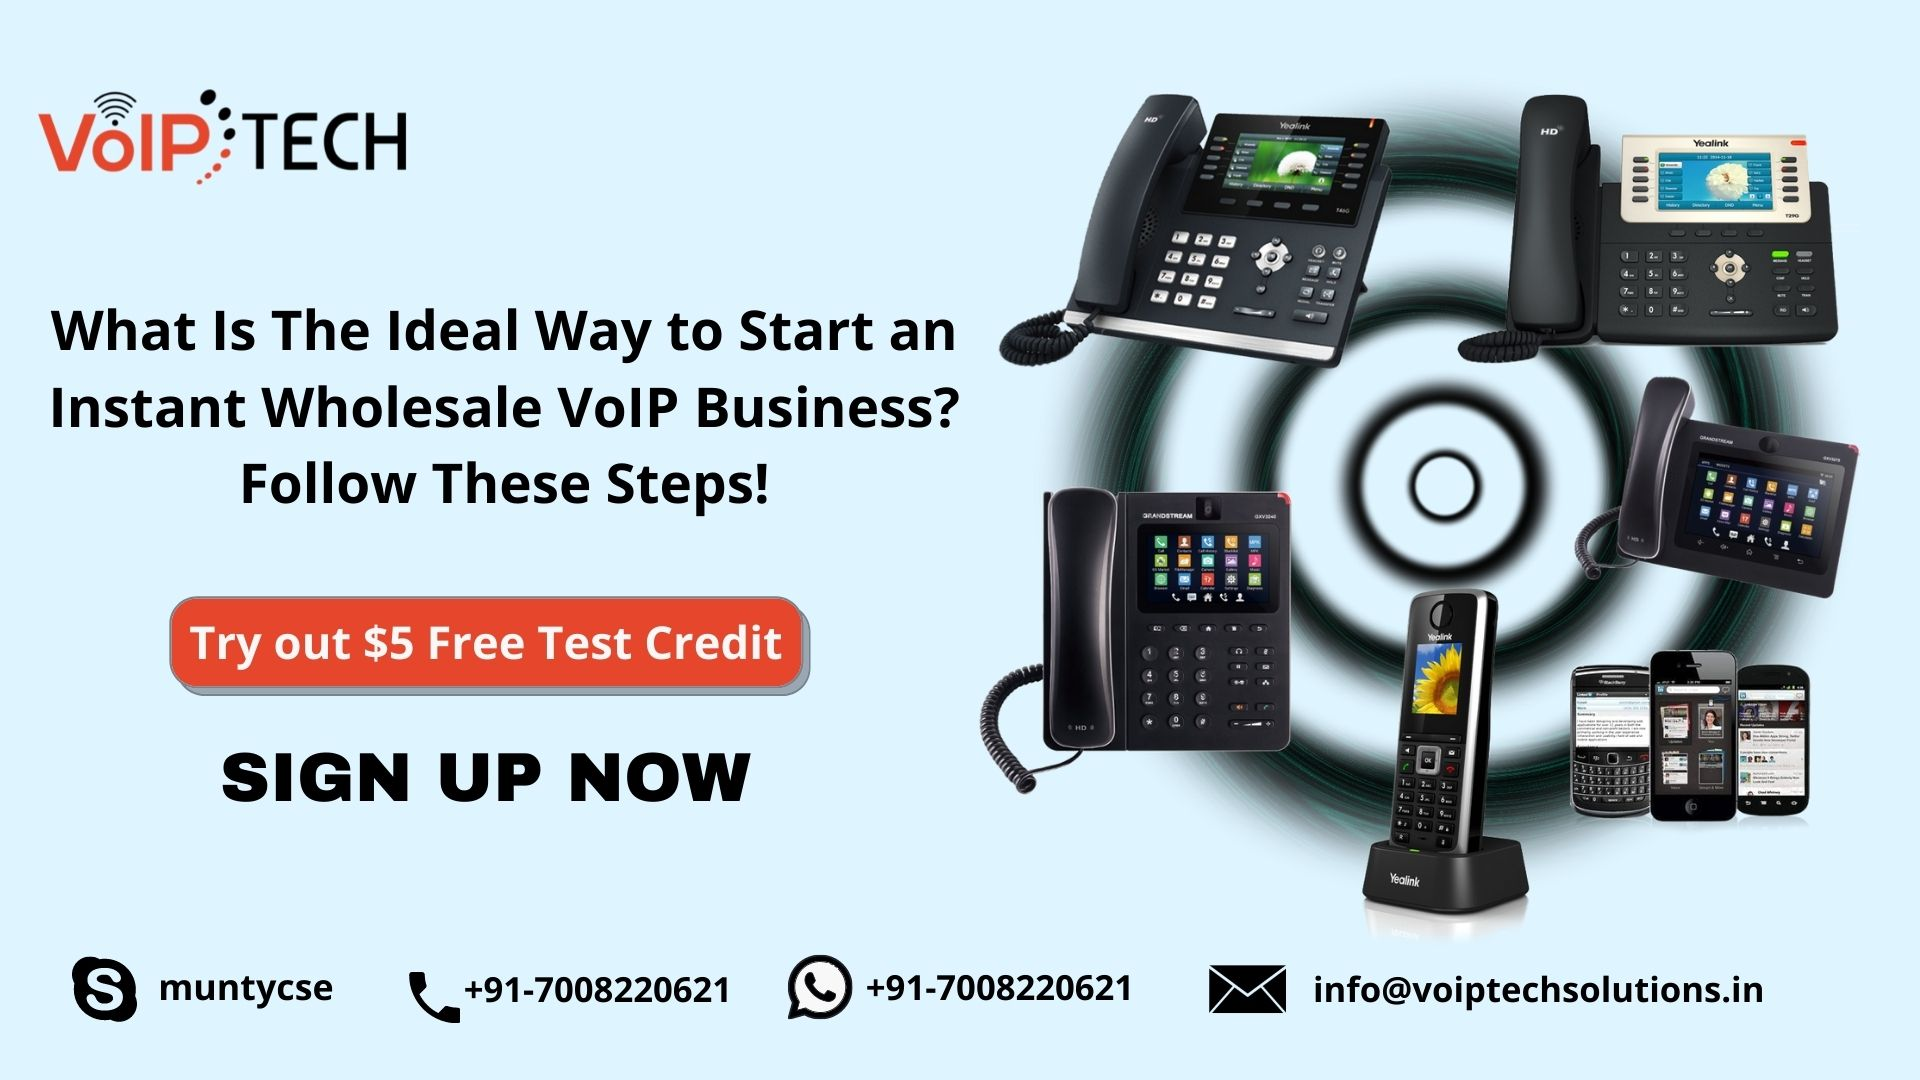 Instant Wholesale VoIP Business, What Is The Ideal Way to Start an Instant Wholesale VoIP Business? Follow These Steps!, Exploring The VoIP Technology from Business Point of view. Pros & Cons! ,VoIP Business, VoIP tech solutions, vici dialer, virtual number, Voip Providers, voip services in india, best sip provider, business voip providers, VoIP Phone Numbers, voip minutes provider, top voip providers, voip minutes, International VoIP Provider